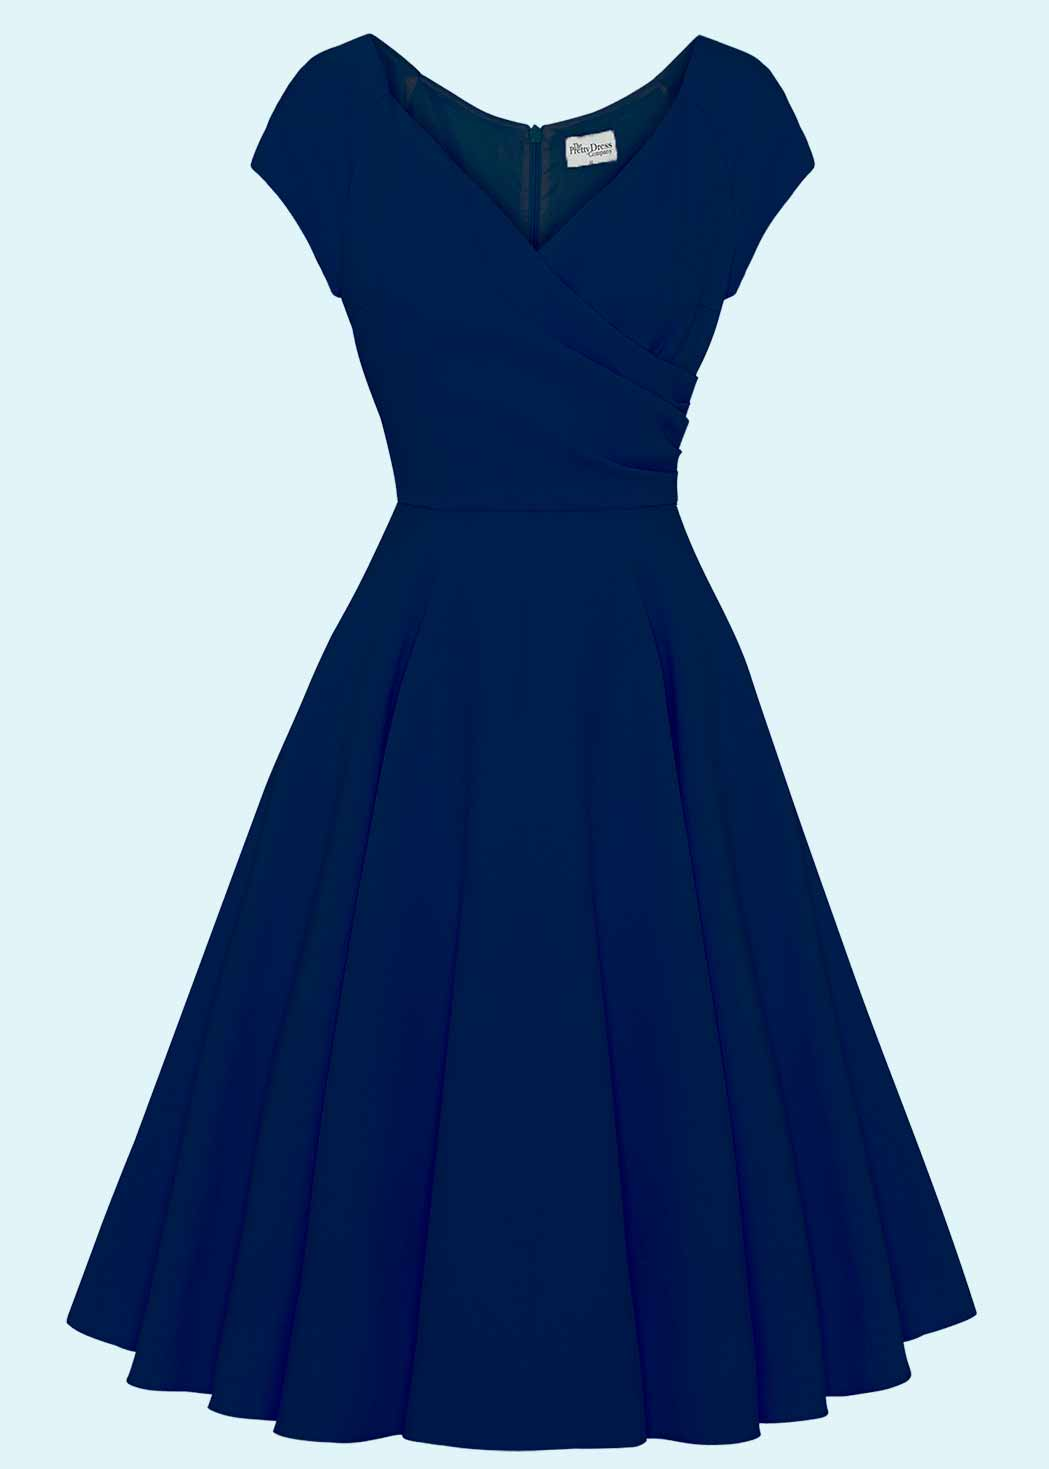 50'er stils swing kjole i navy blå  fra The Pretty Dress Company